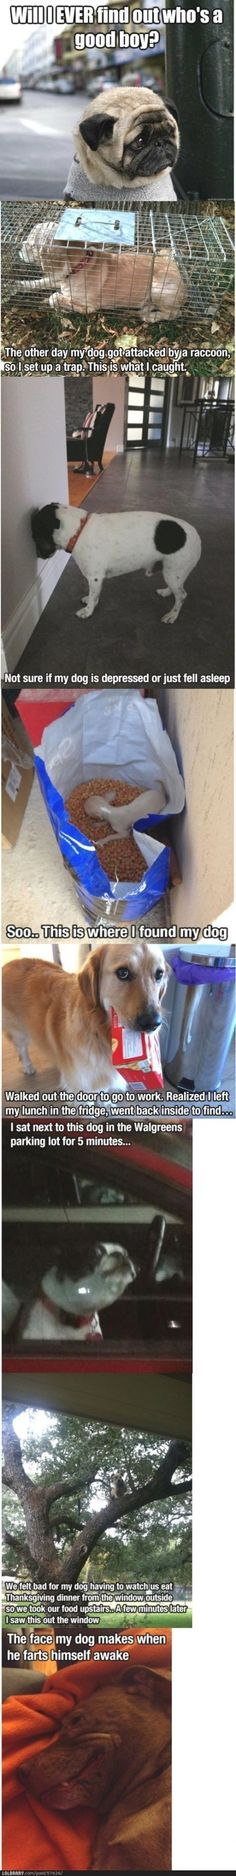 Funny Dog Memes Pictures, Photos, and Images for Facebook, Tumblr, Pinterest, and Twitter